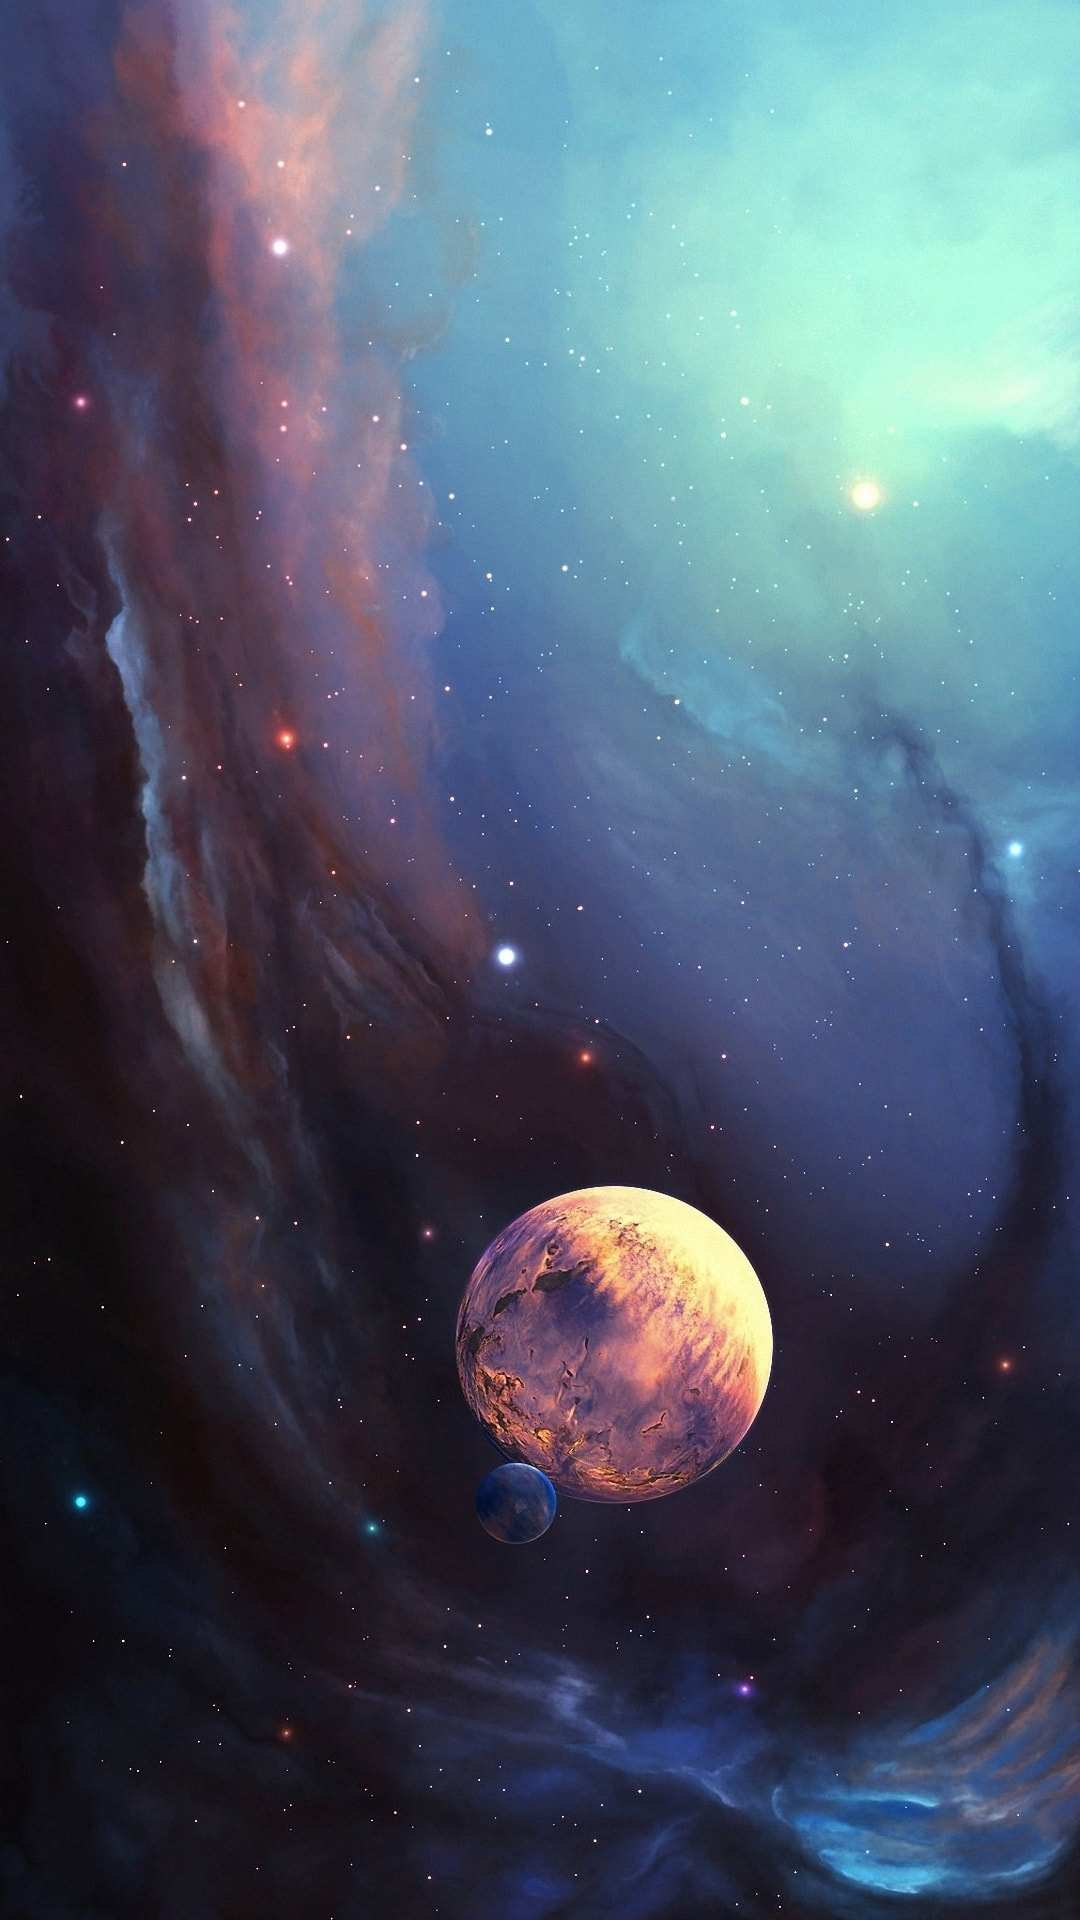 Space Planet and Moon iPhone Wallpaper